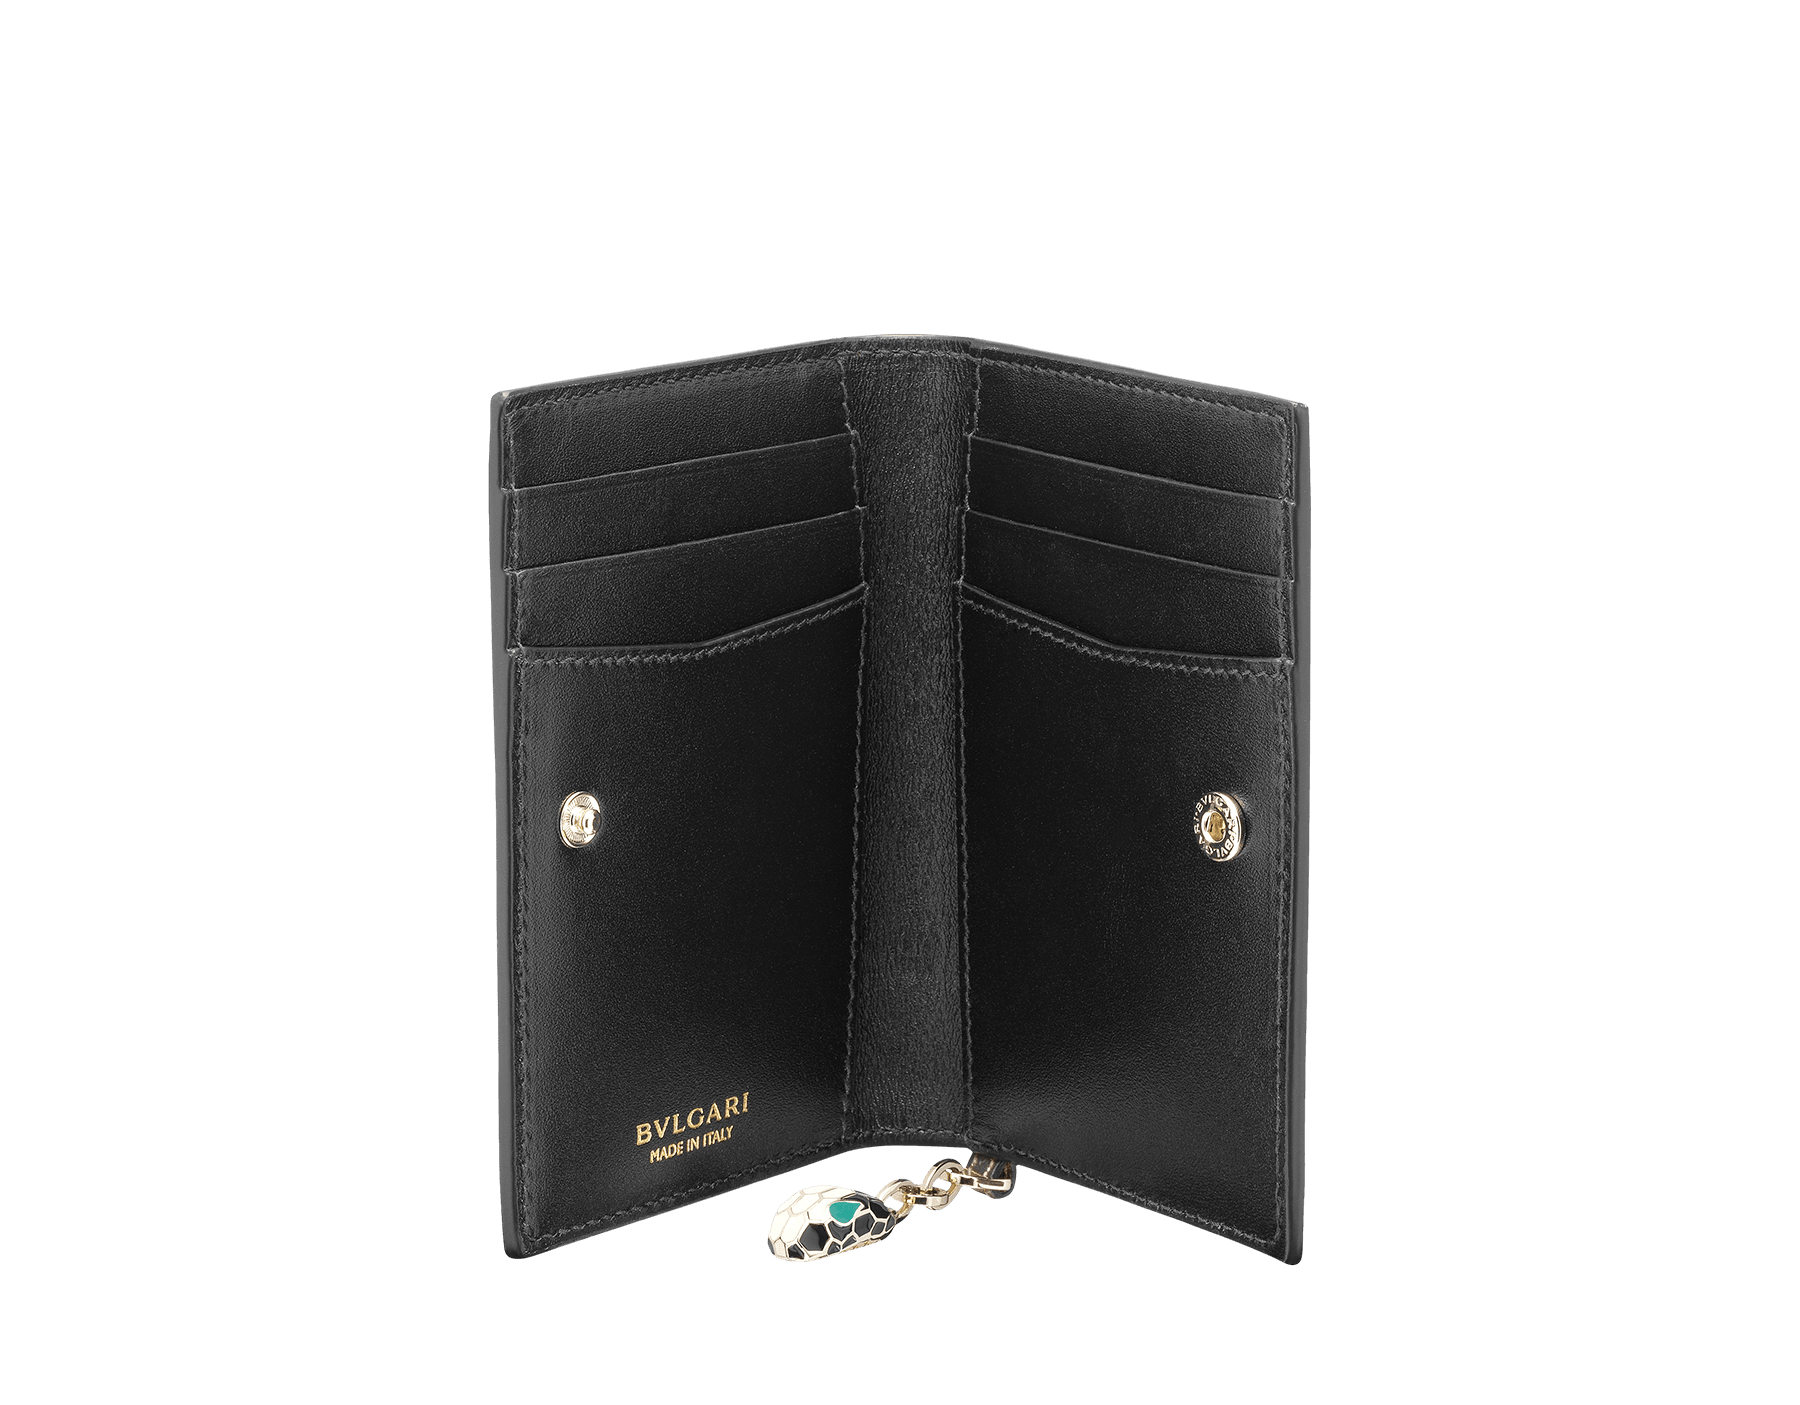 Folded credit card holder in rose quartz brushed metallic calf leather, with brass light gold plated hardware and stud closure. Serpenti head charm in black and white enamel, with green enamel eyes. 285418 image 2